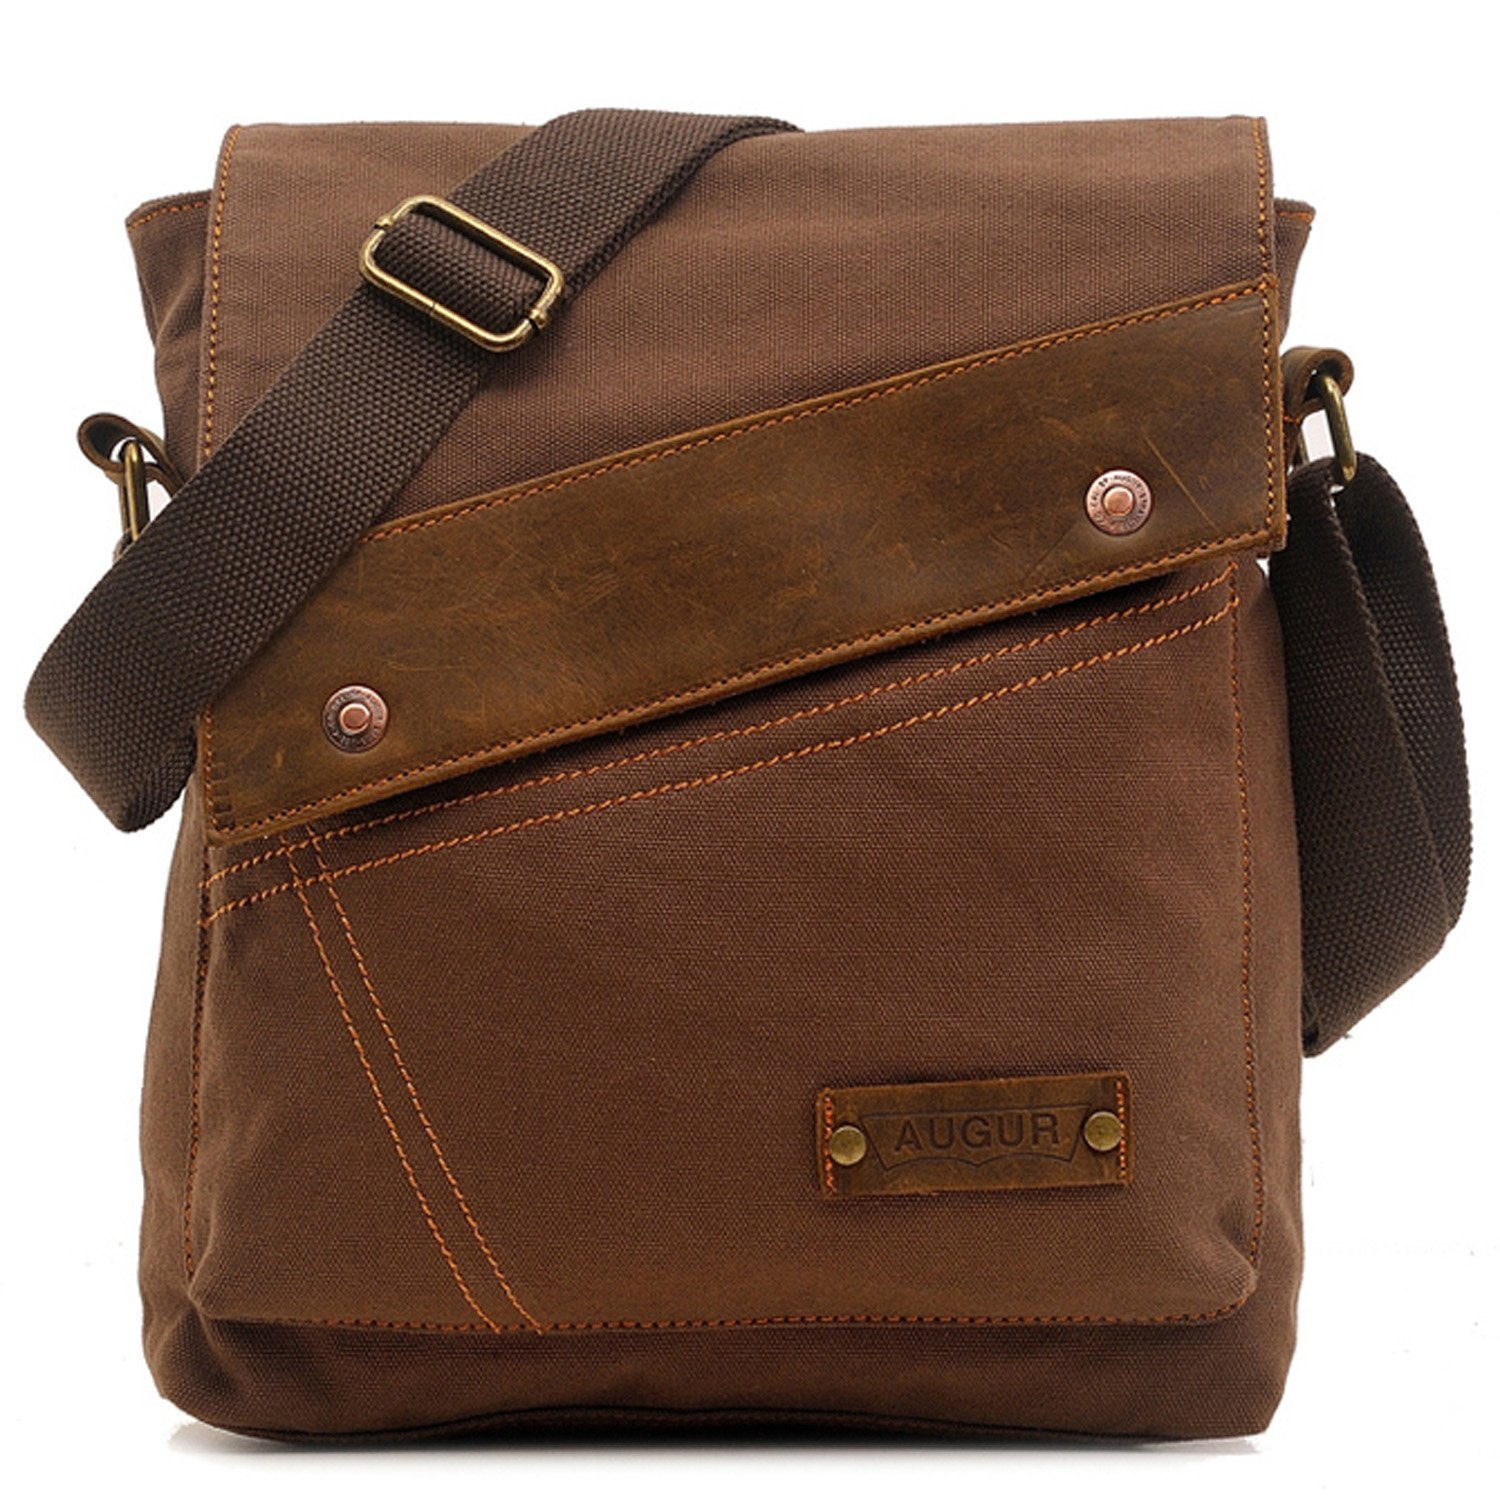 Aibag Messenger Bag, Vintage Small Canvas Shoulder Crossbody Purse (Coffee)